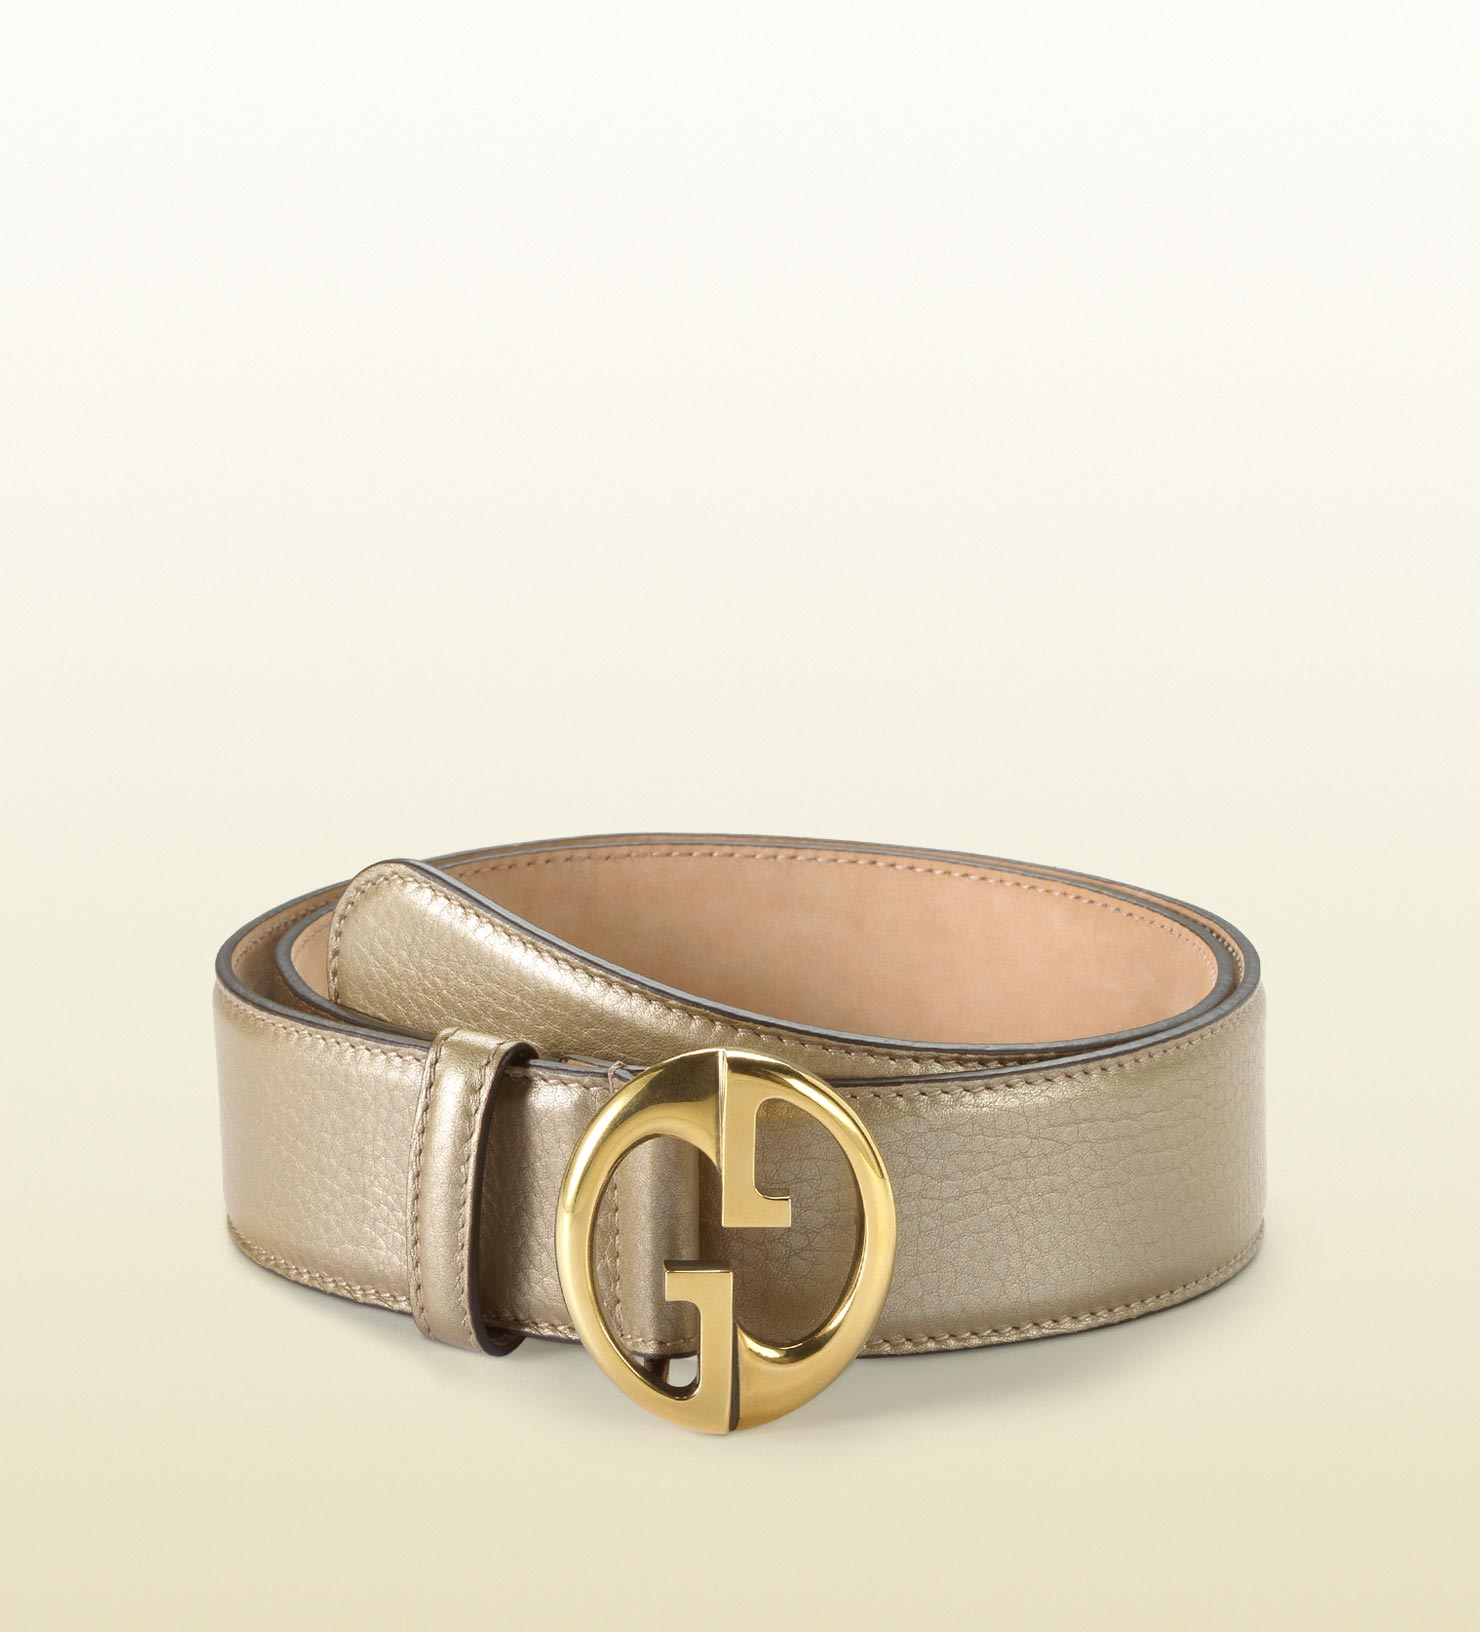 8cb621625 ... Gucci Blet: Gucci Belt With Double G Buckle In Natural